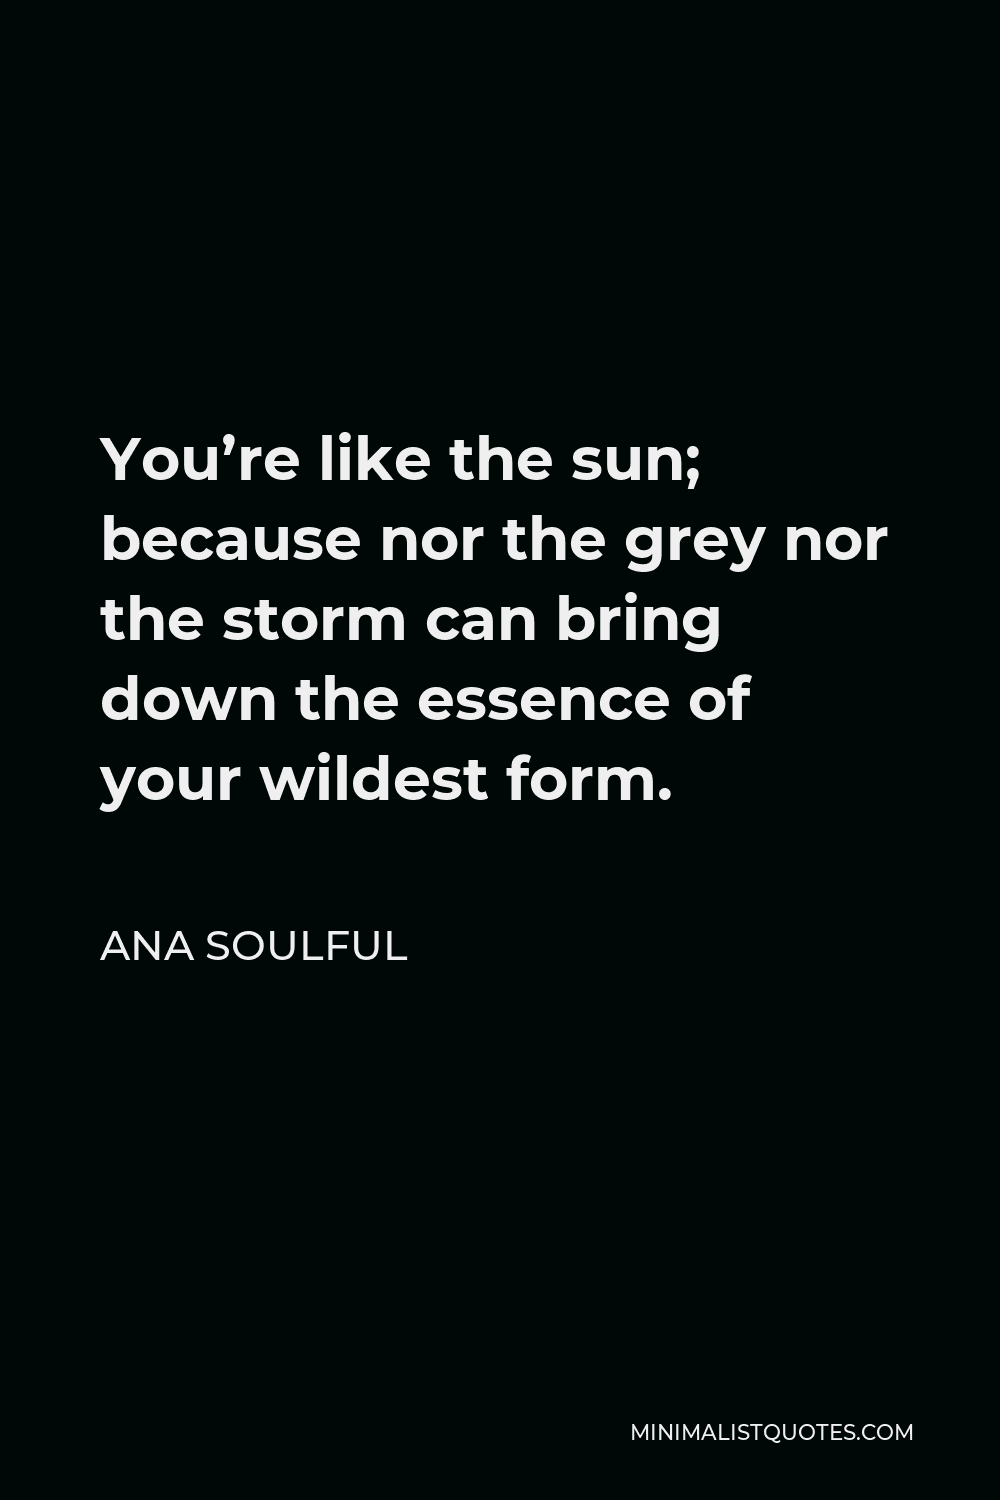 Ana Soulful Quote - You're like the sun; because nor the grey nor the storm can bring down the essence of your wildest form.